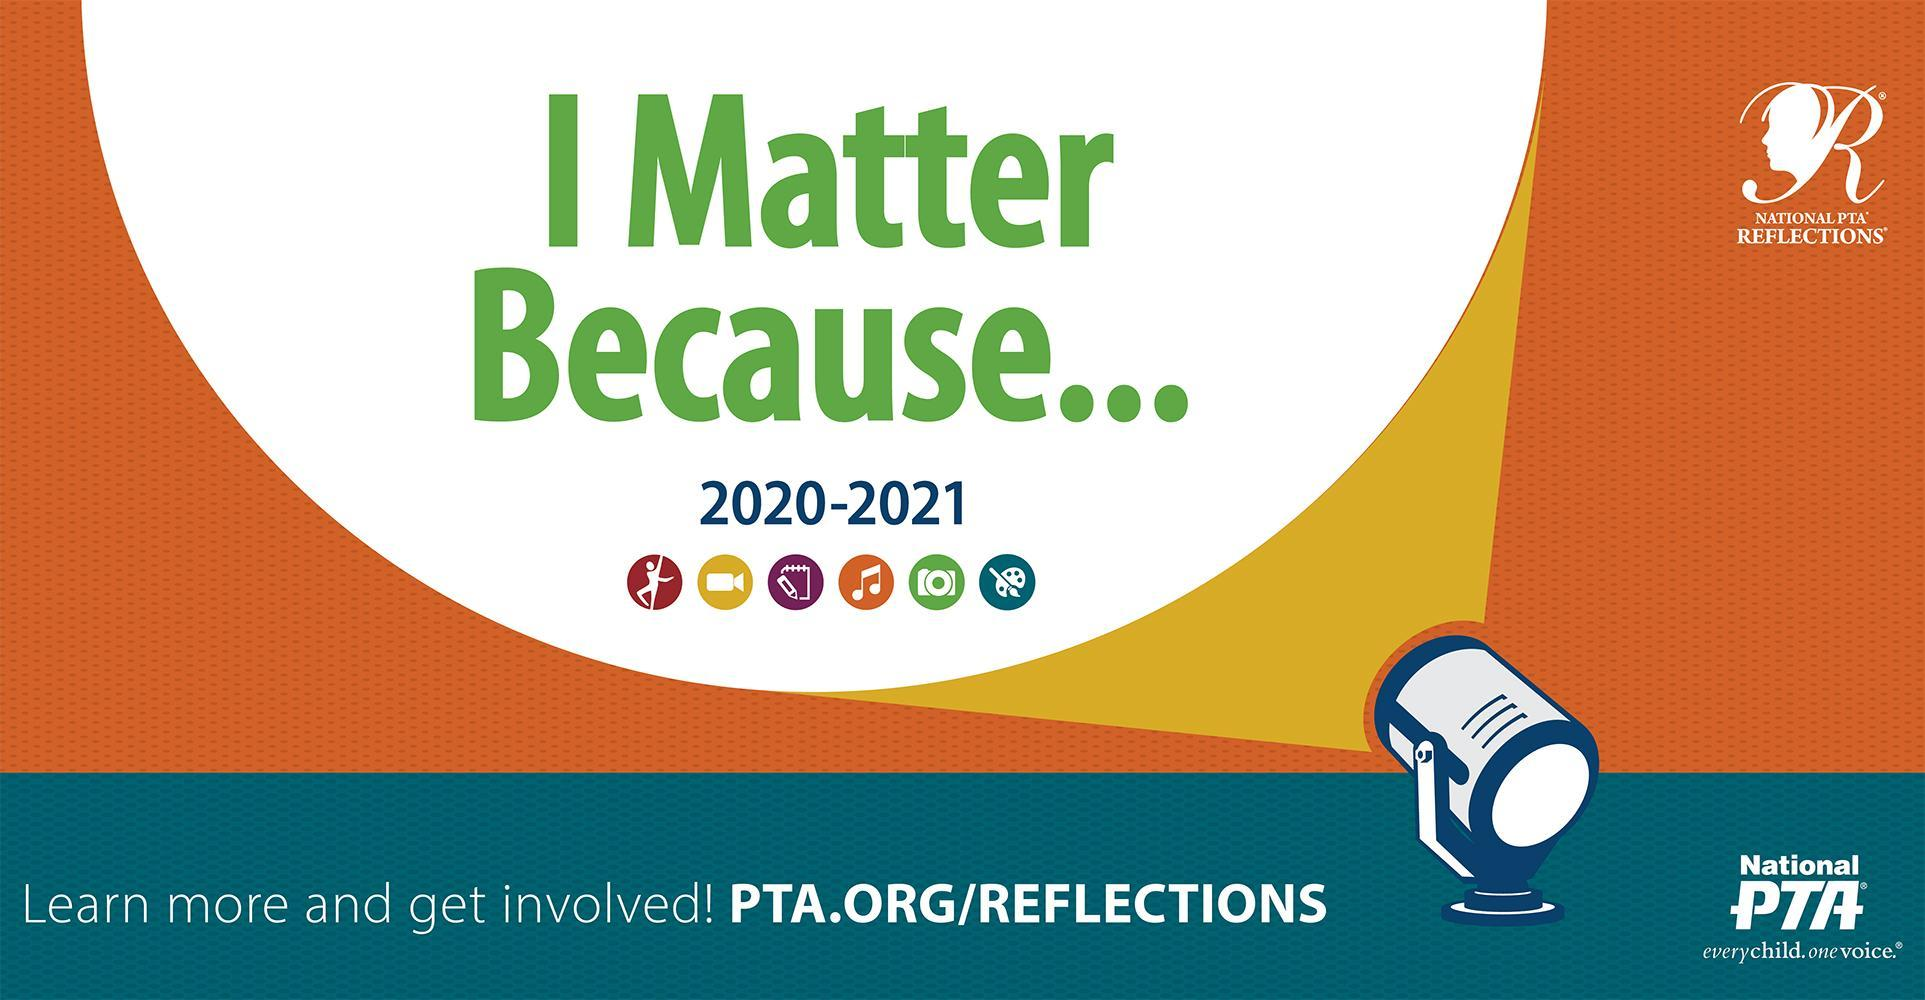 New 2020-2021 PTA Reflections Information